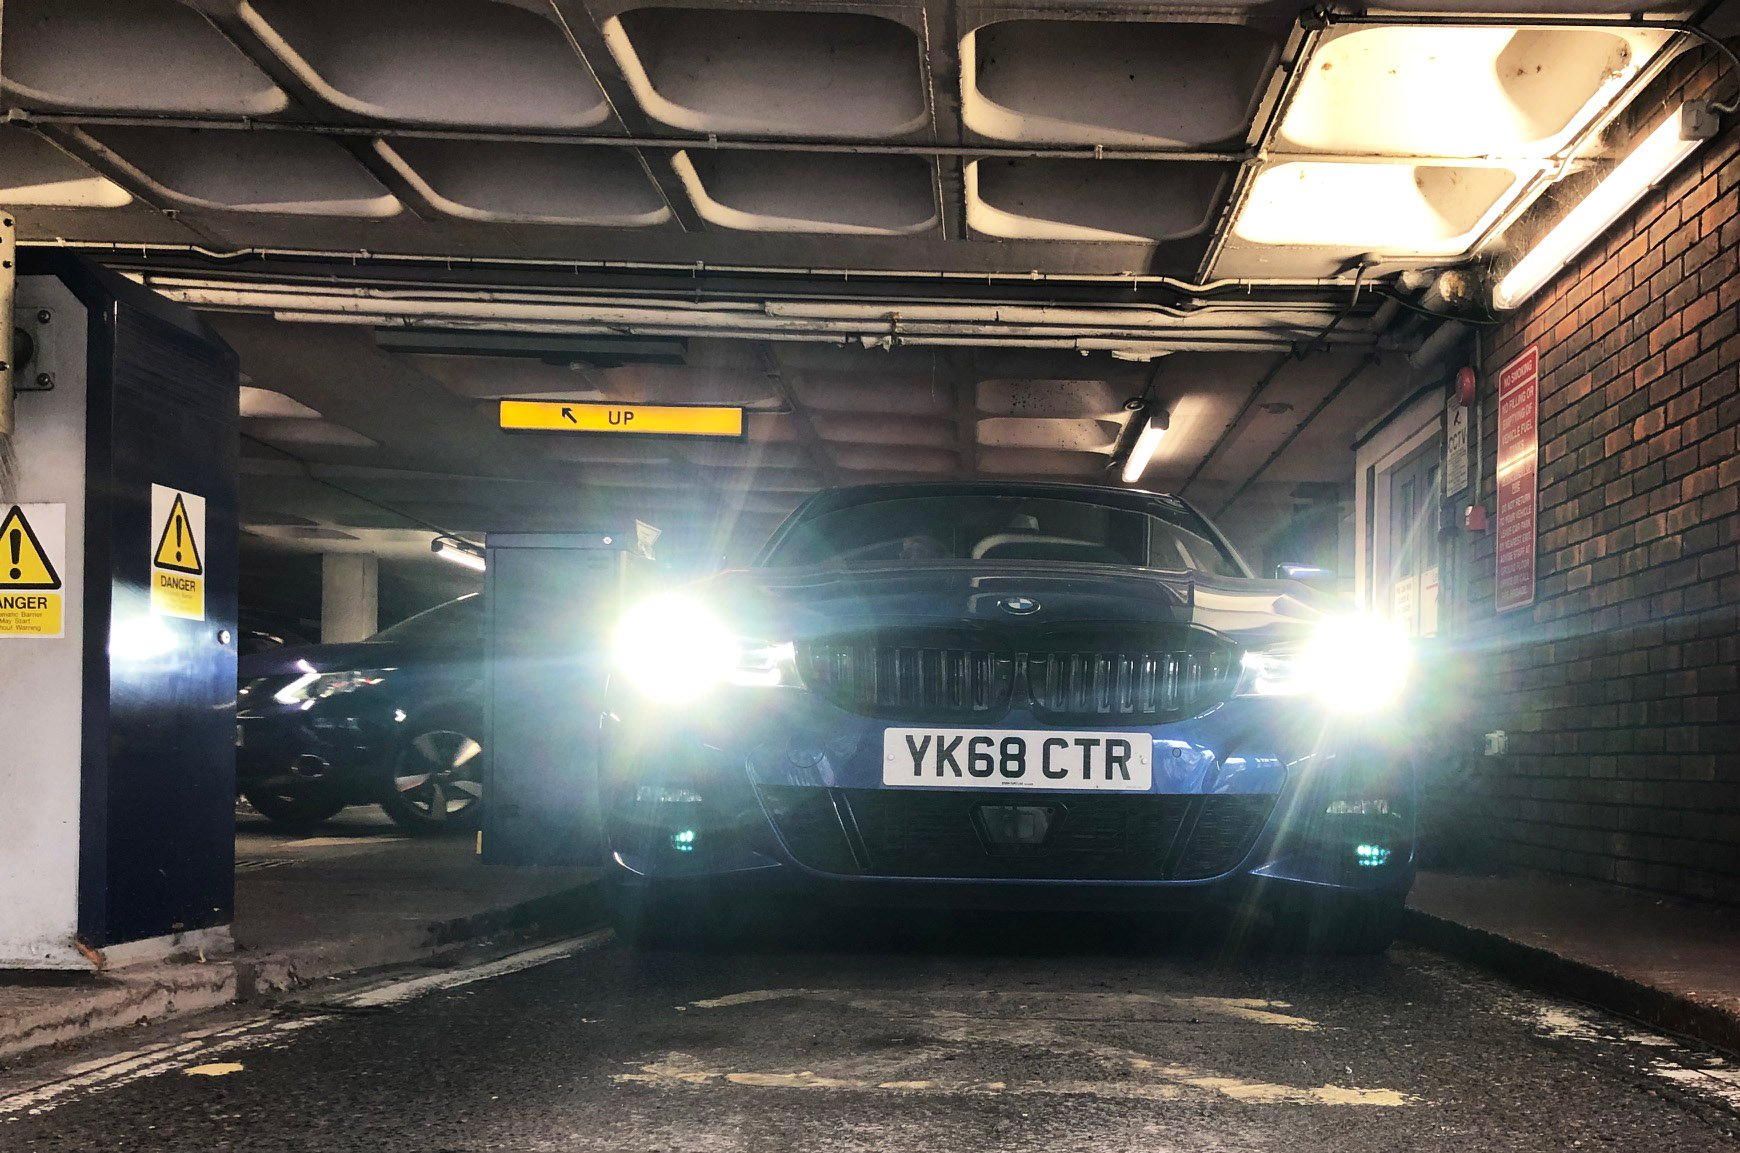 BMW 3 Series in multi-storey car park